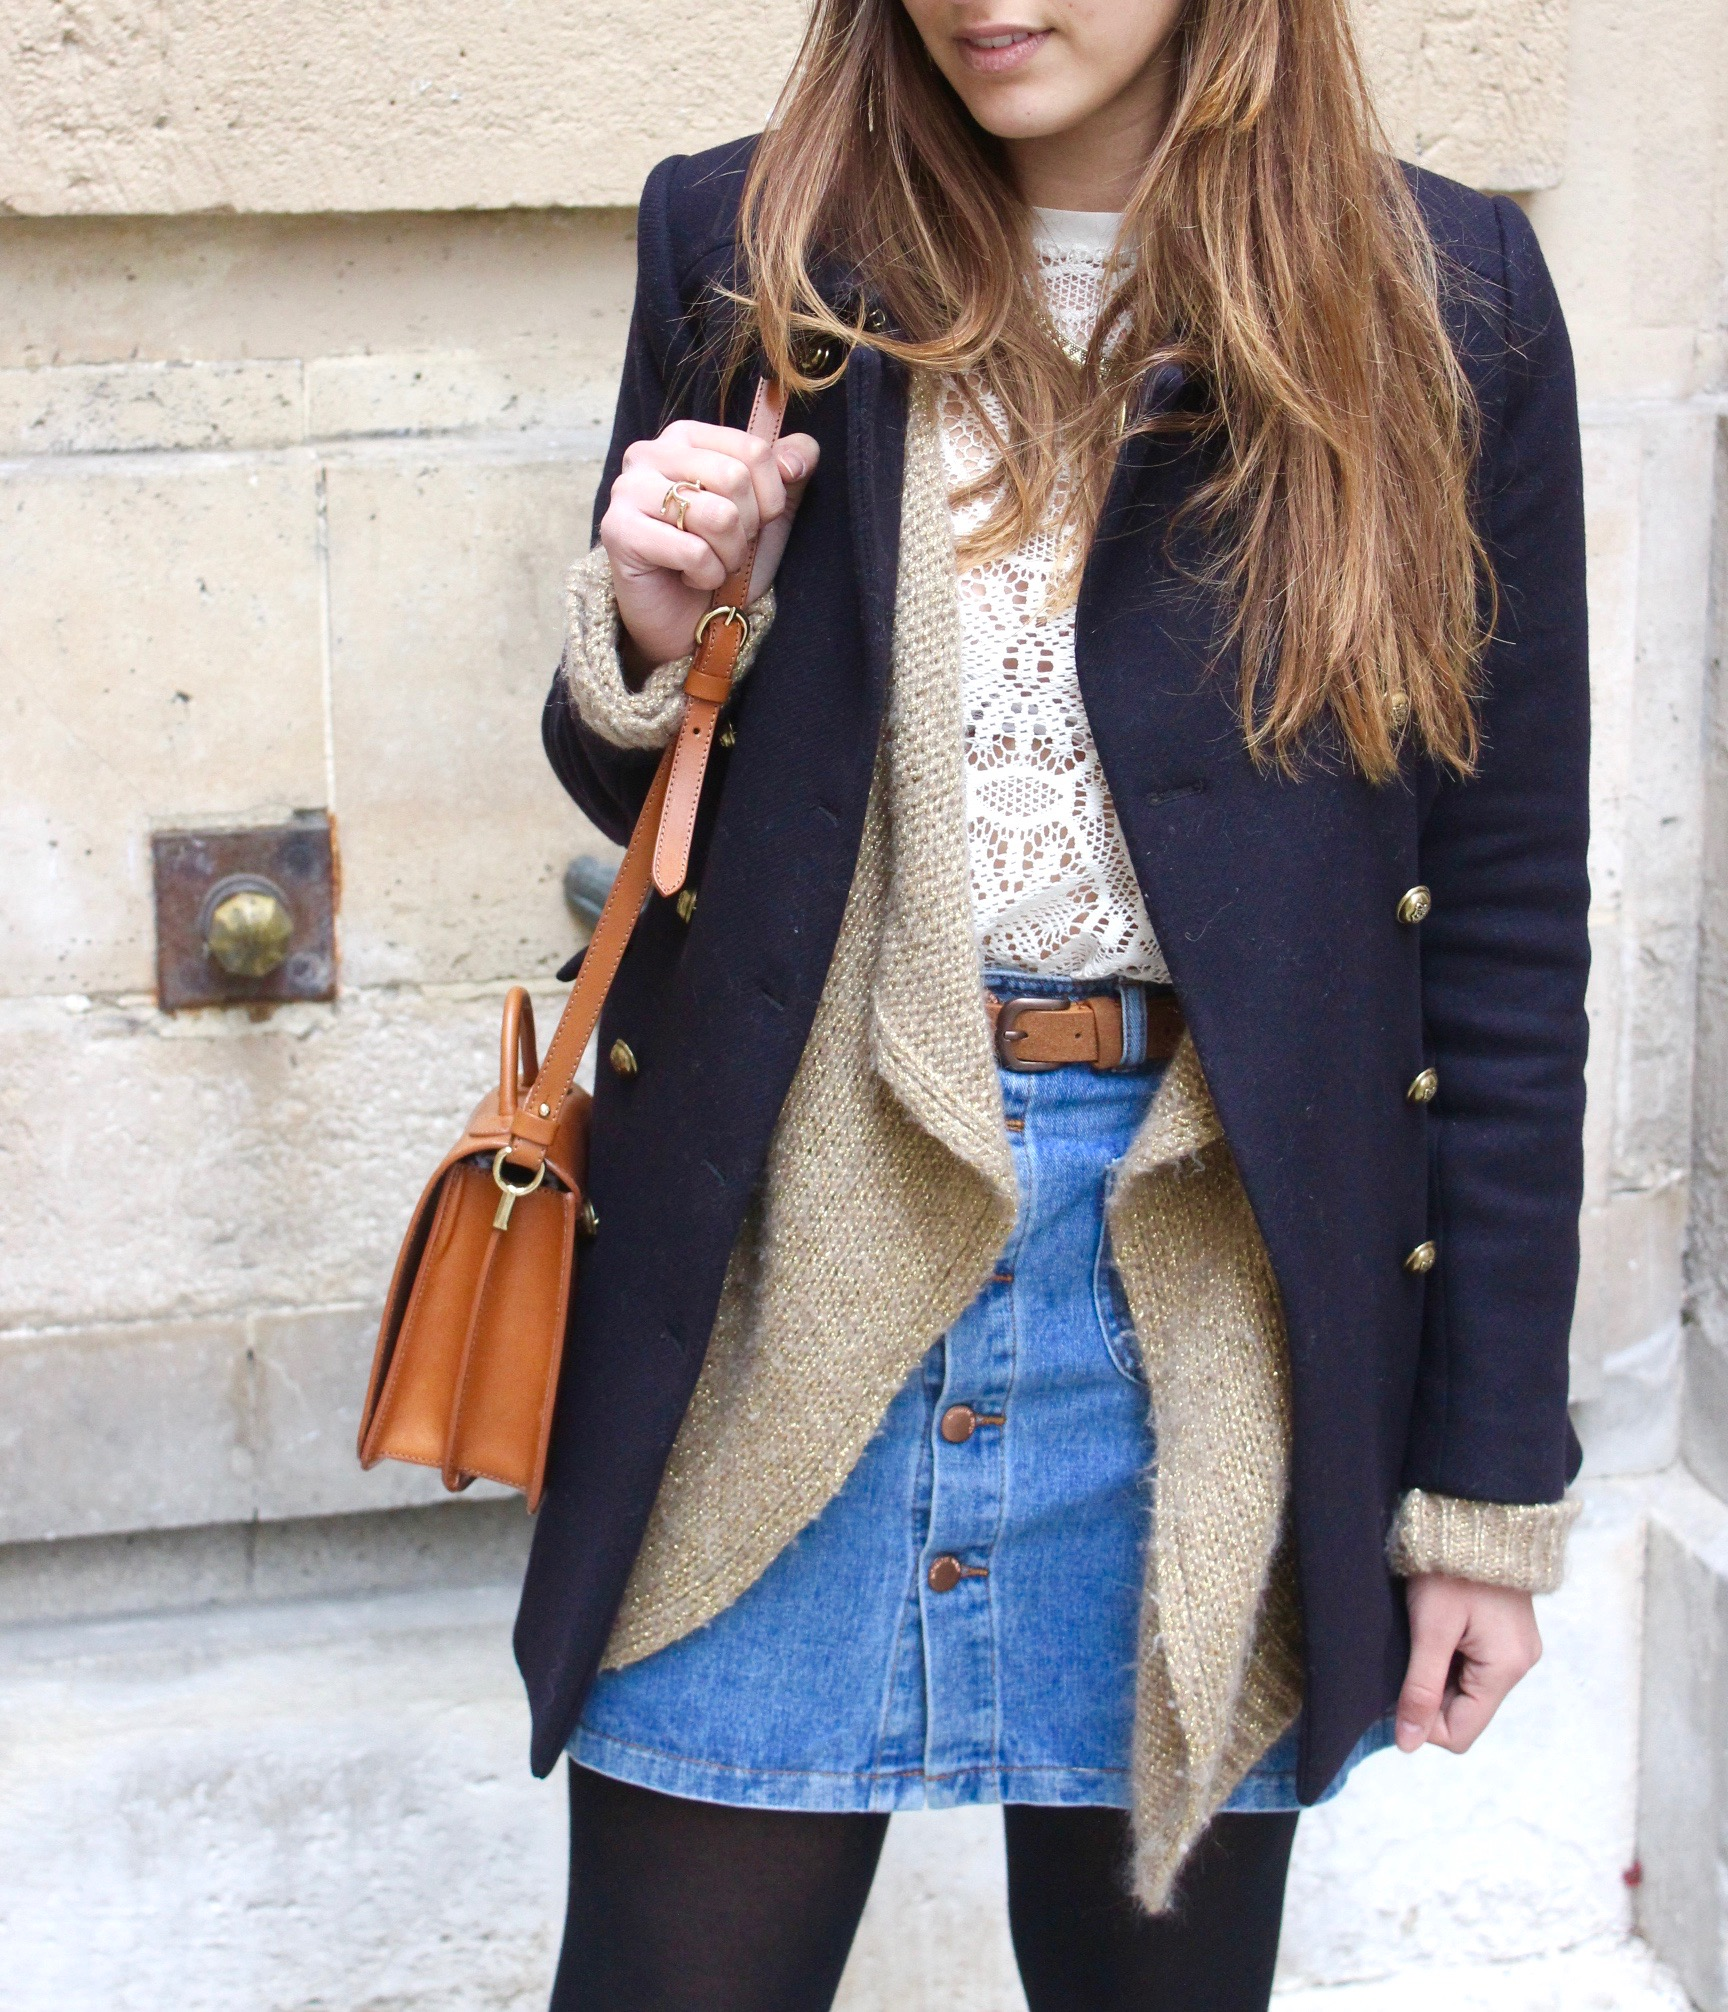 Blog-This-kind-Of-Girl-Mode-La-jupe-en-jean-4